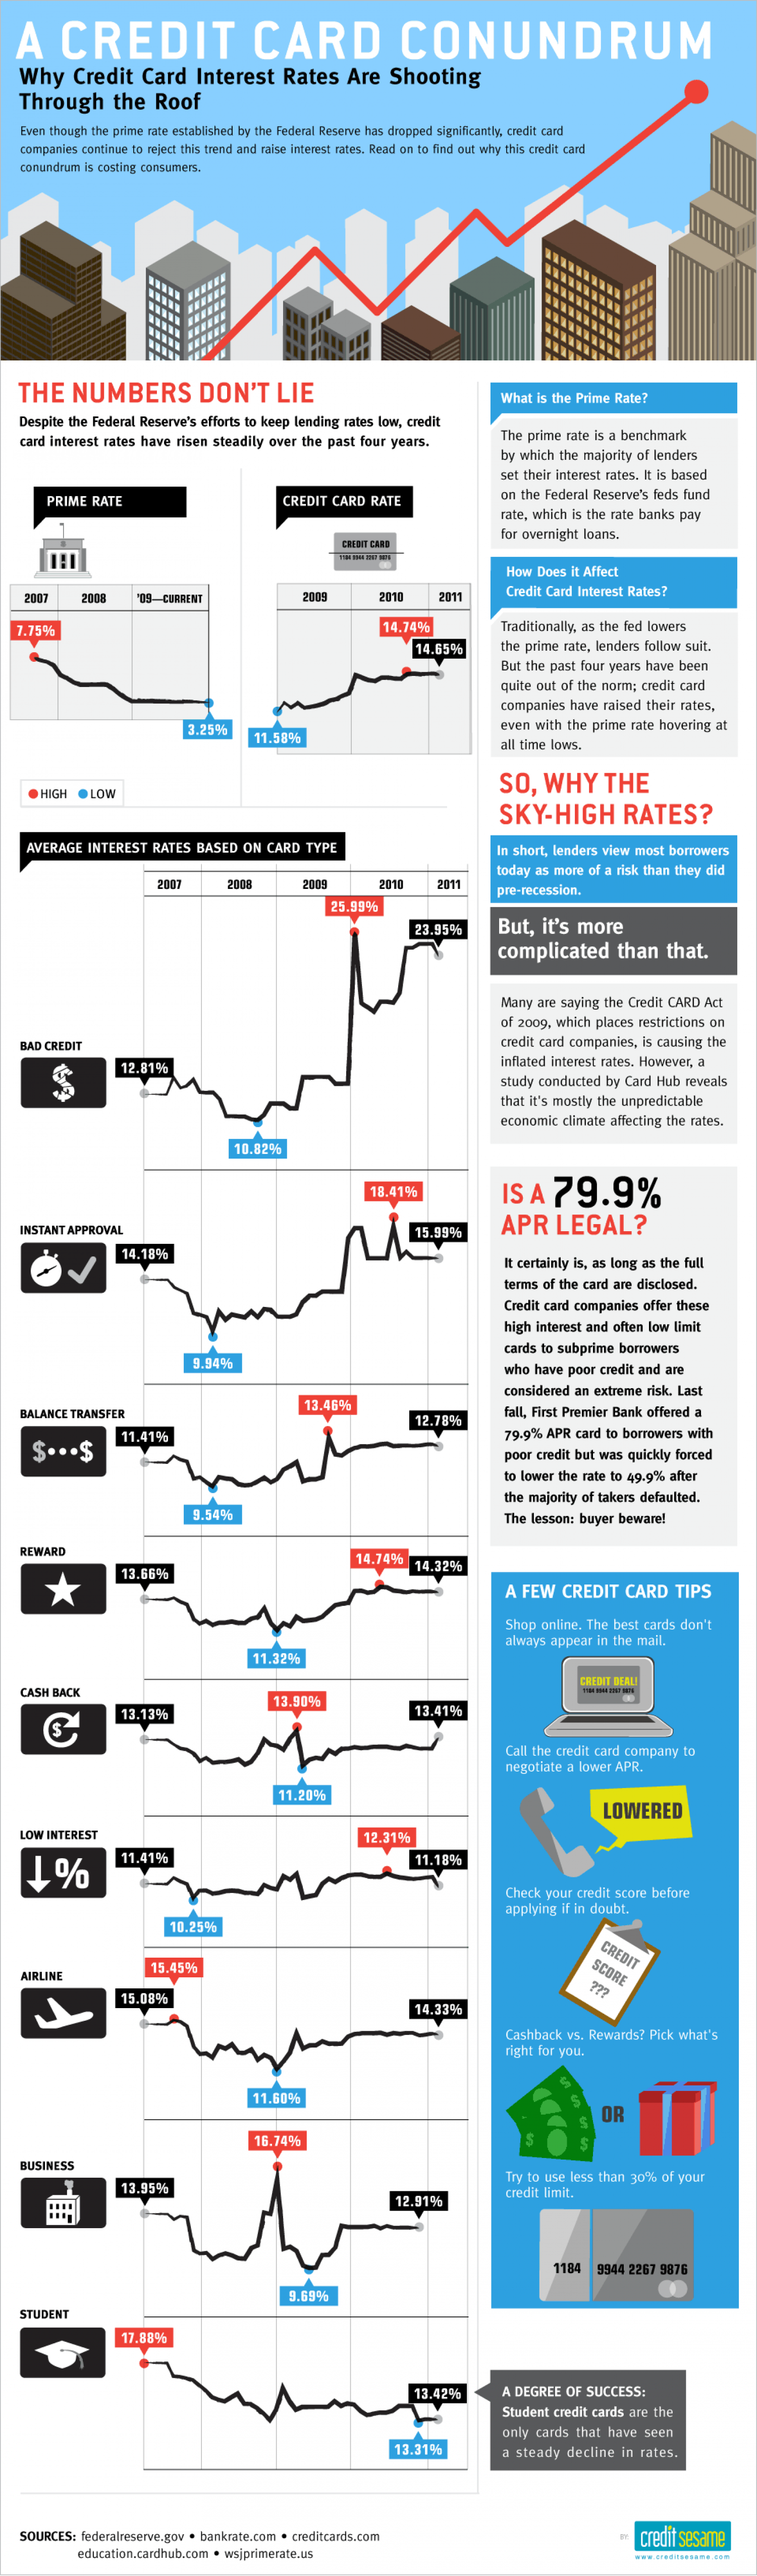 A Credit Card Conundrum Infographic